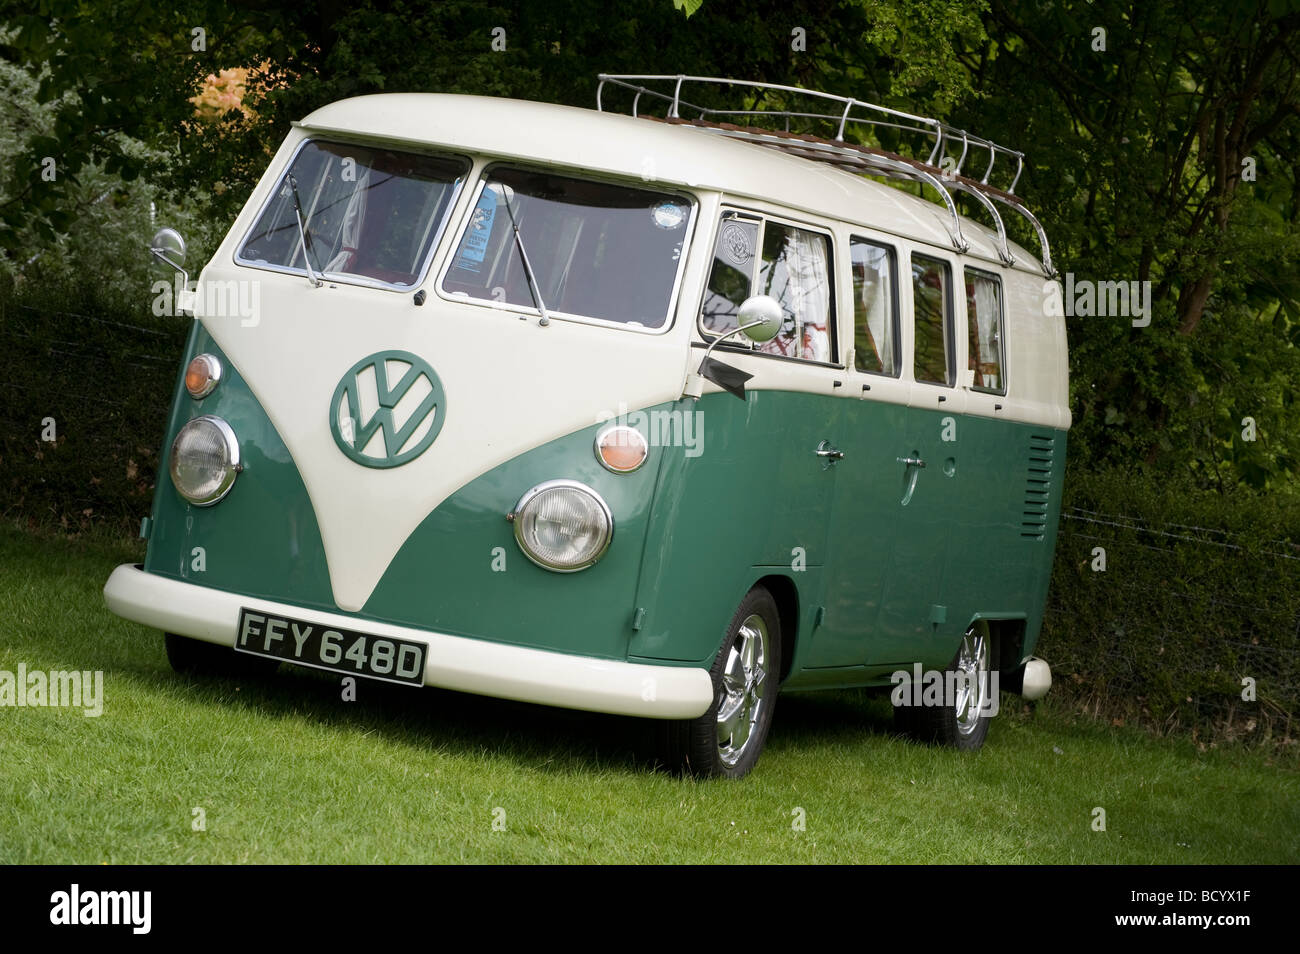 White And Green Volkswagen Split Screen Camper Van